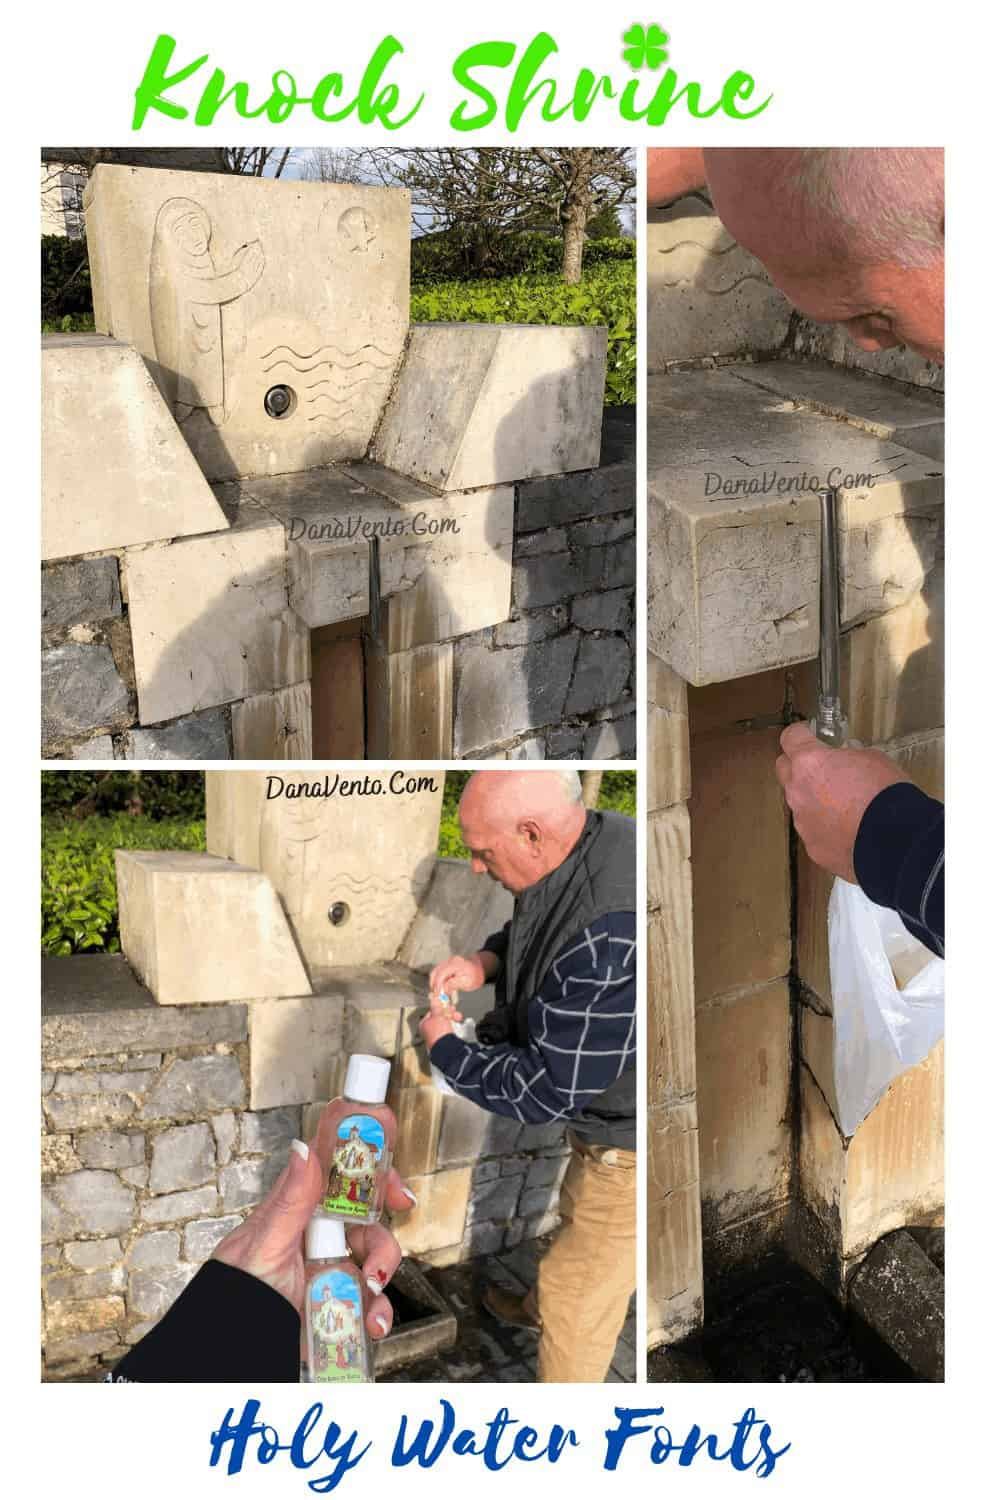 Knock Shrine holy water fonts